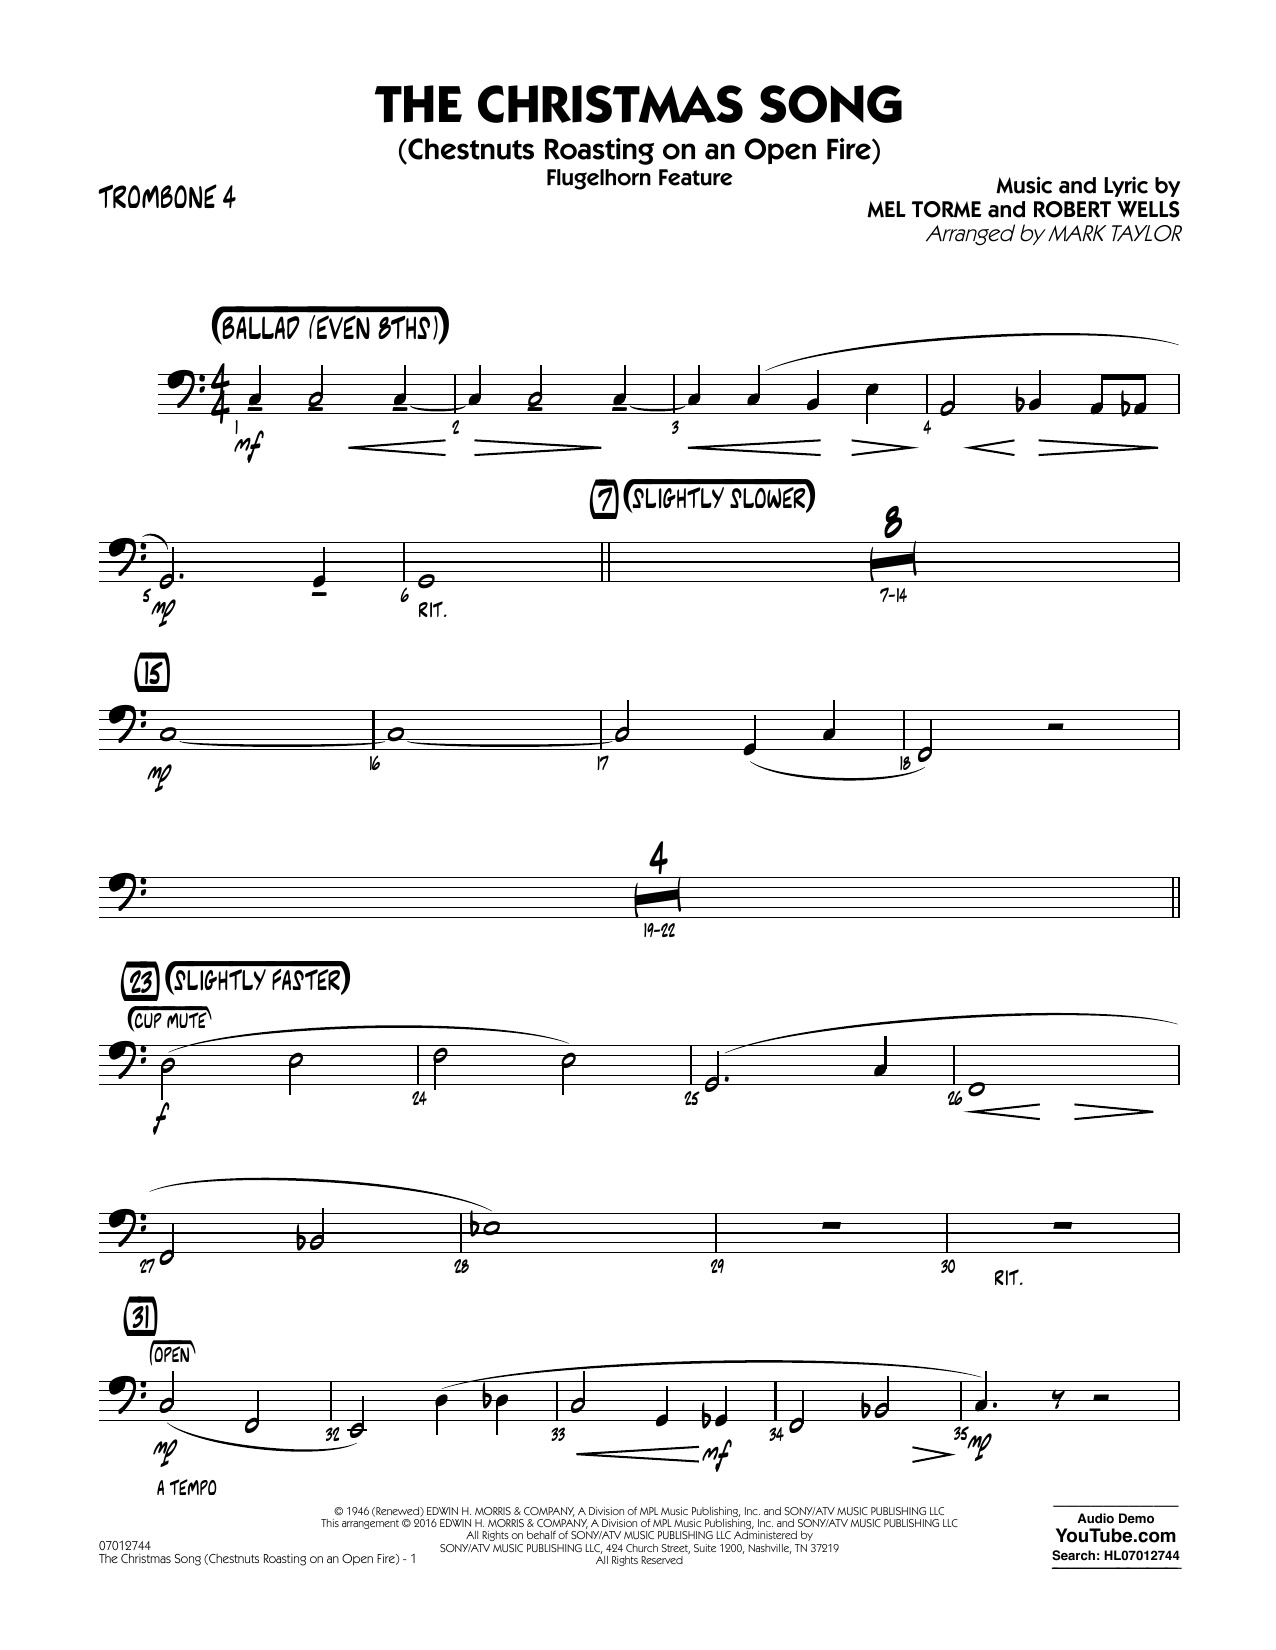 The Christmas Song (Chestnuts Roasting on an Open Fire) - Trombone 4 (Jazz Ensemble)